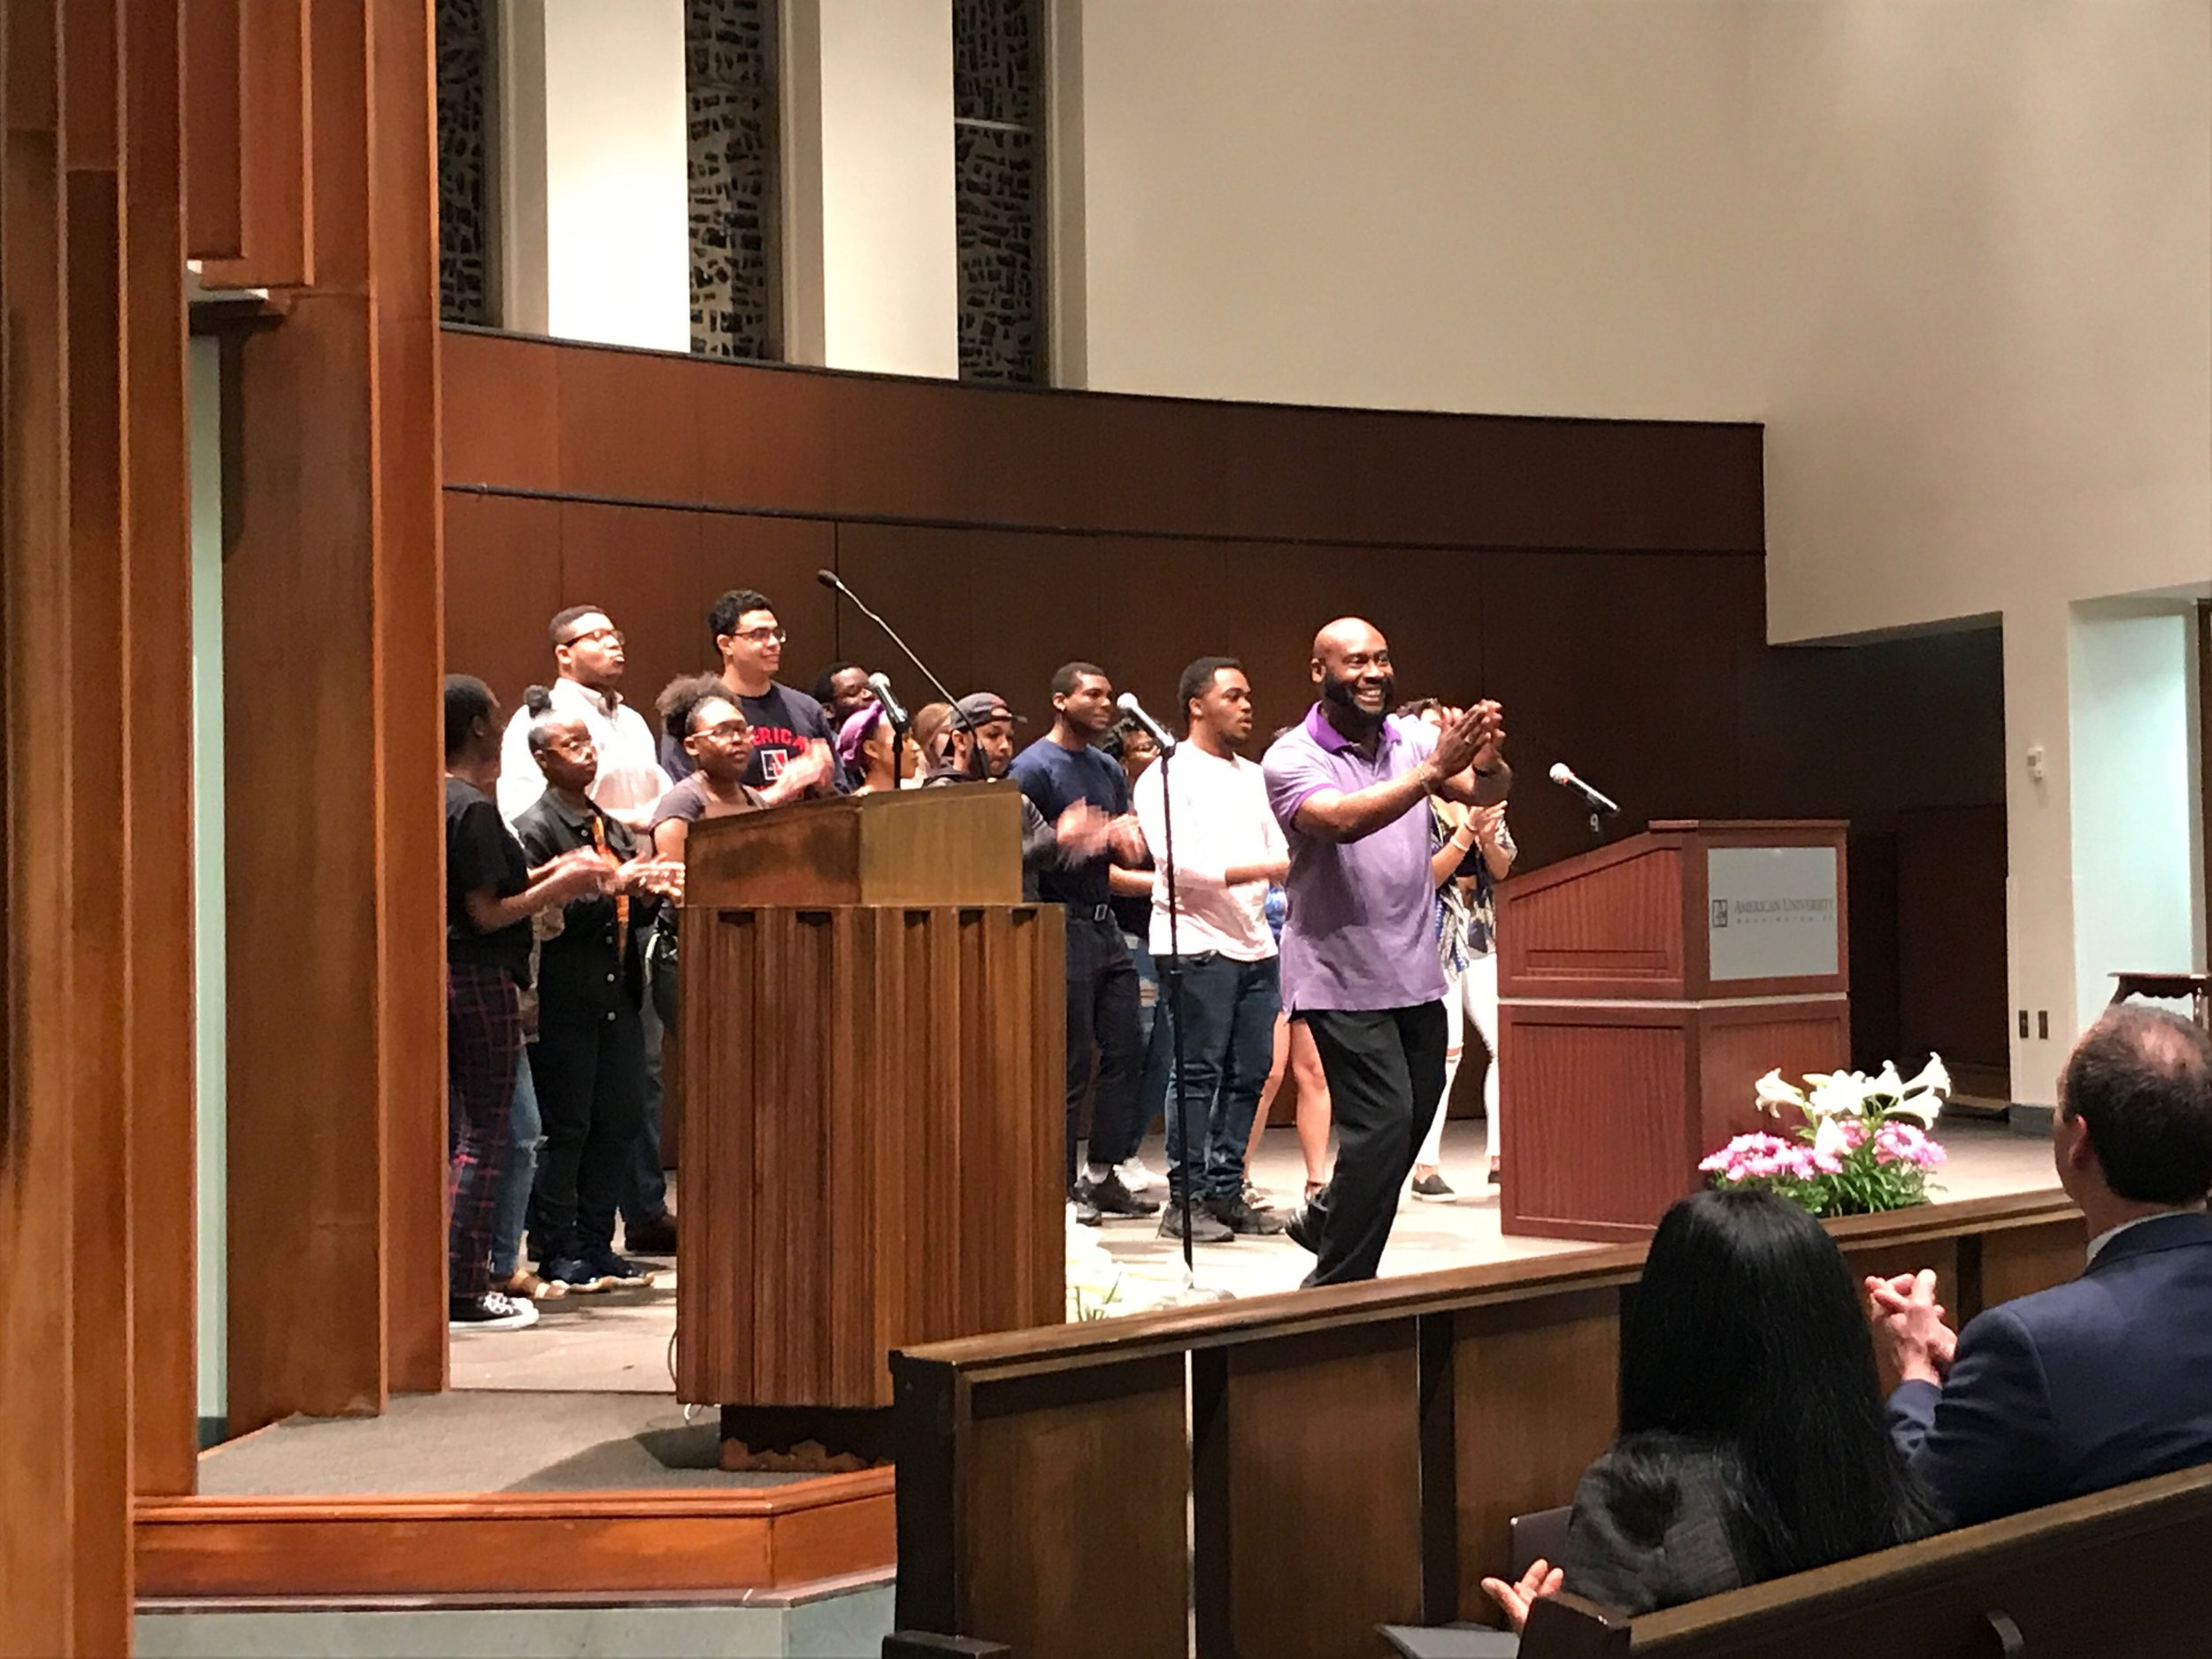 Sylstea Sledge and the AU Gospel Choir sing in Kay Chapel at the 17th annuel R. Bruce Poynter lecture on April 24th.